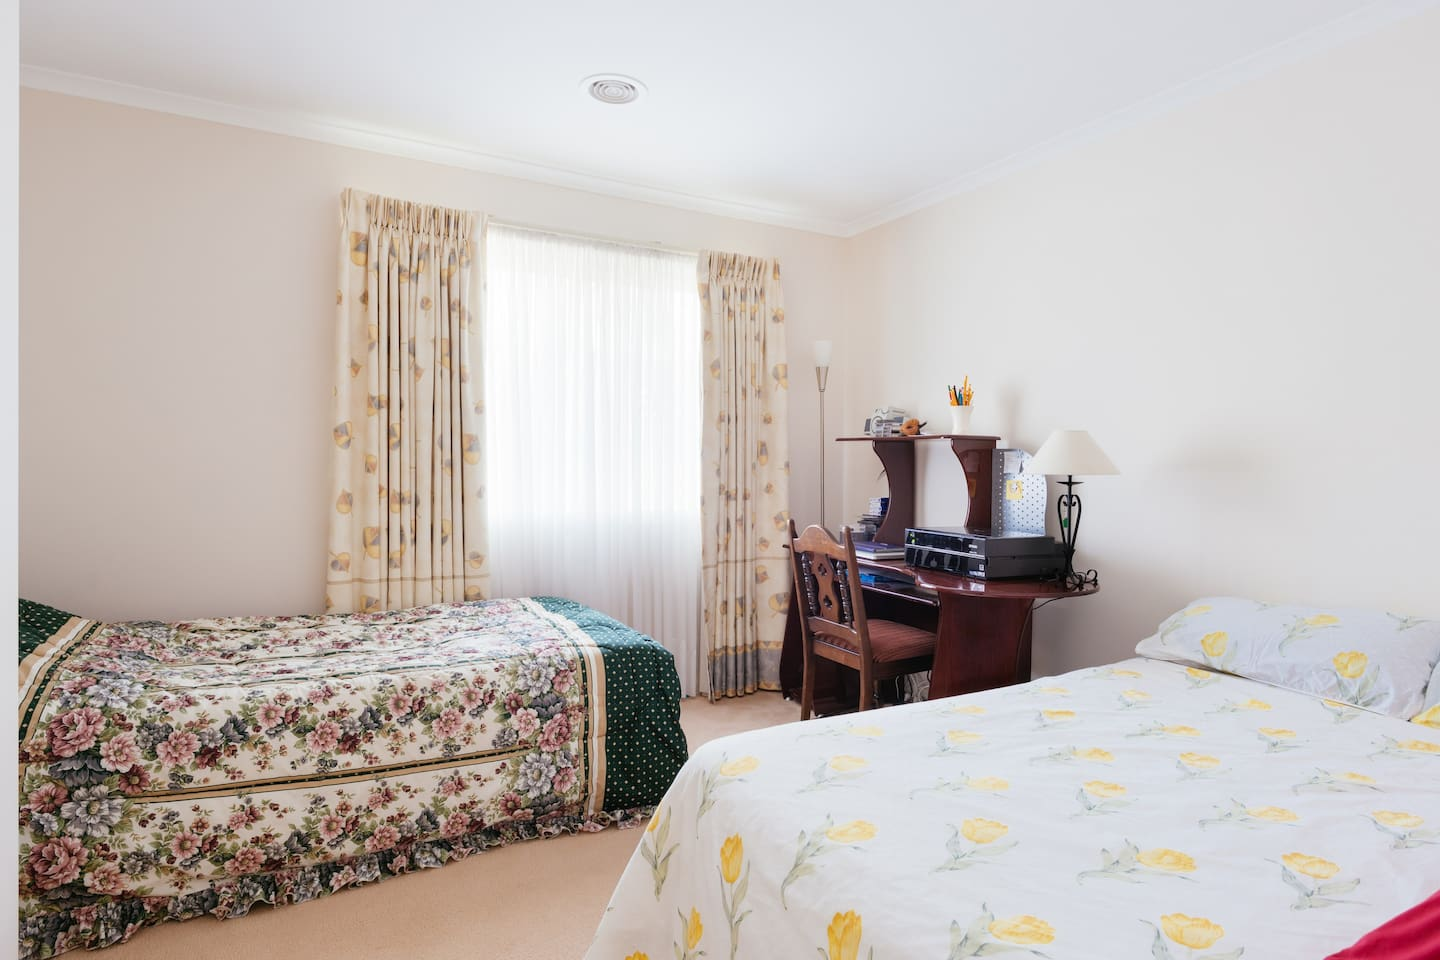 The room is spacious enough to add a single bed if needed to accomodate 3people as is on the photo .